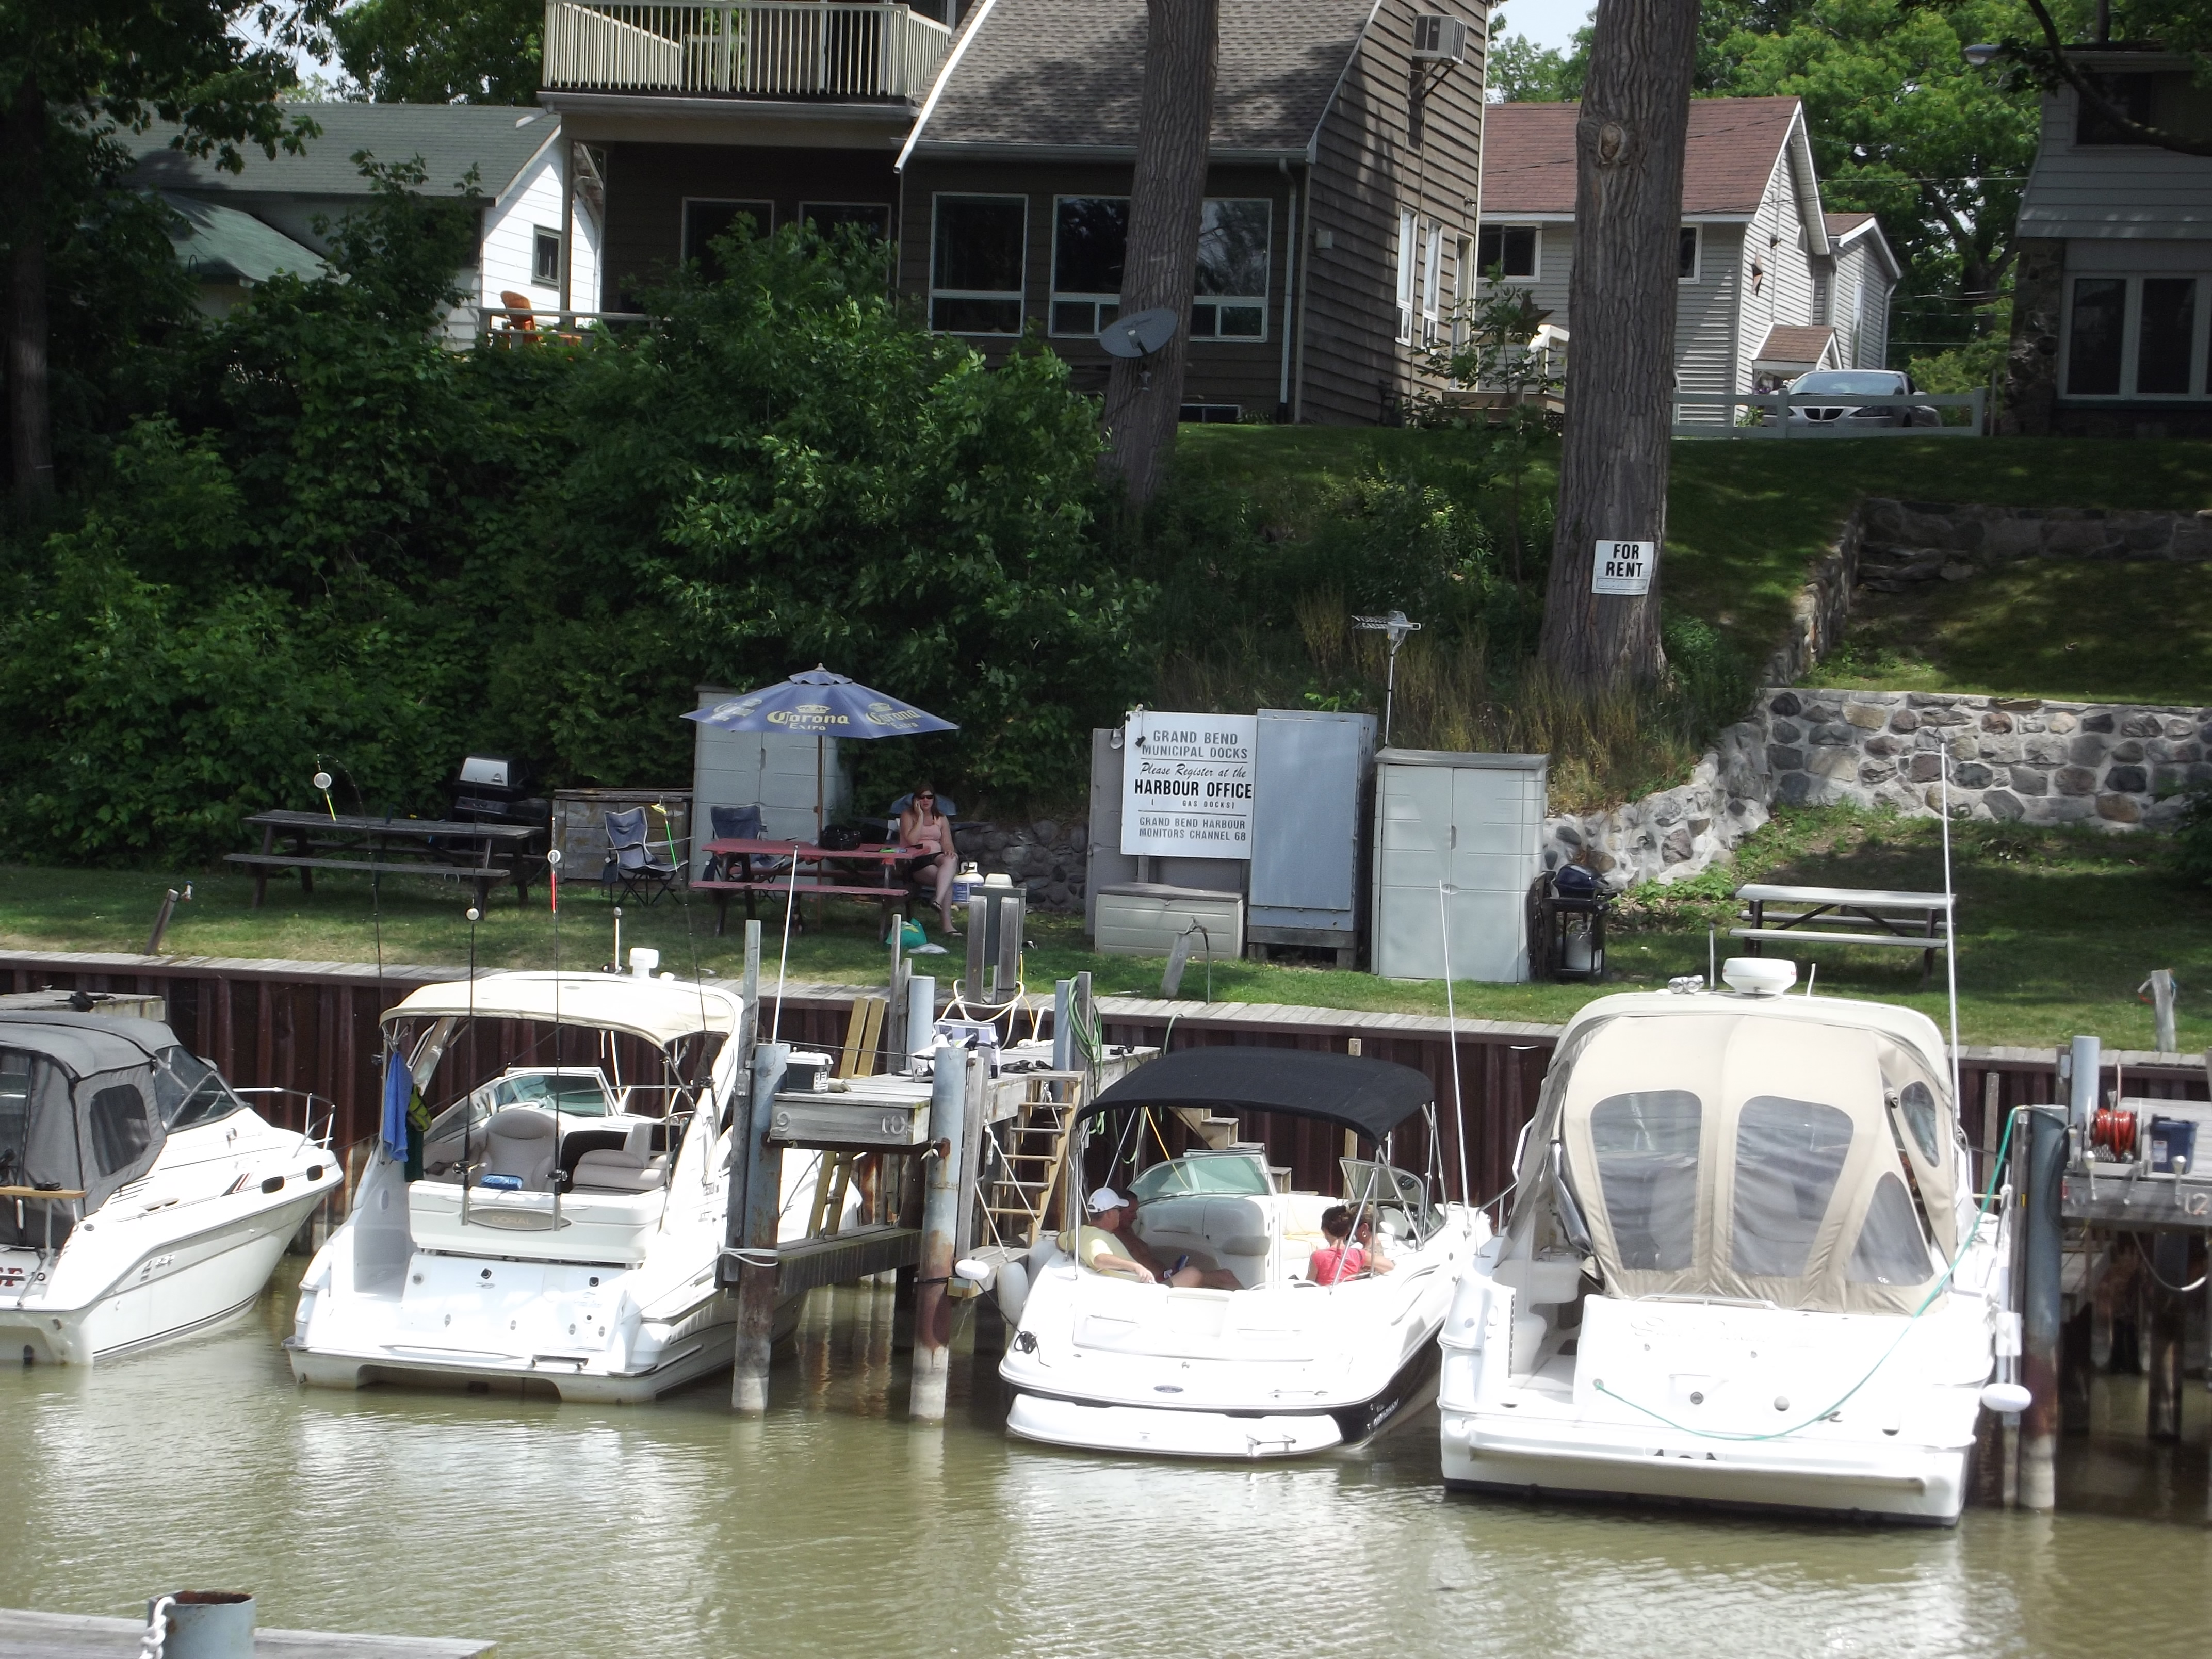 Etiquette fosters peaceful co-existence among boaters